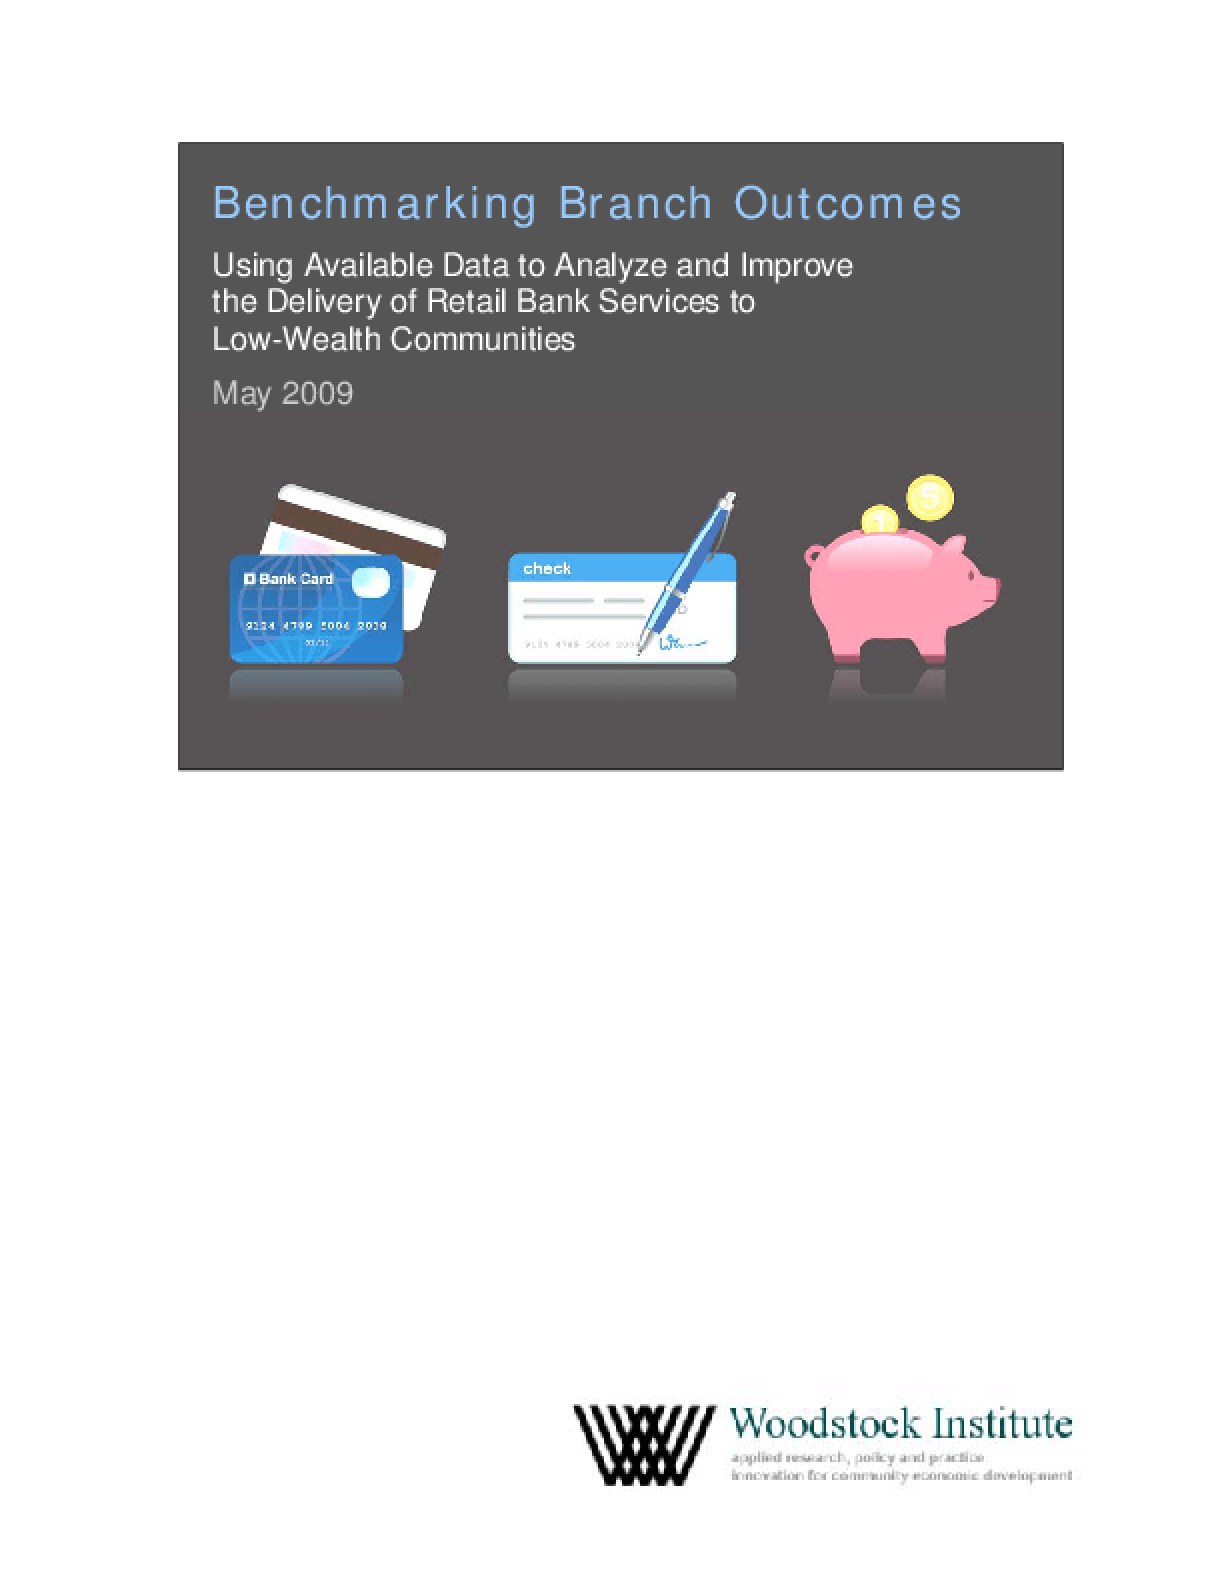 Benchmarking Branch Outcomes: Using Available Data to Analyze and Improve the Delivery of Retail Bank Services to Low-Wealth Communities